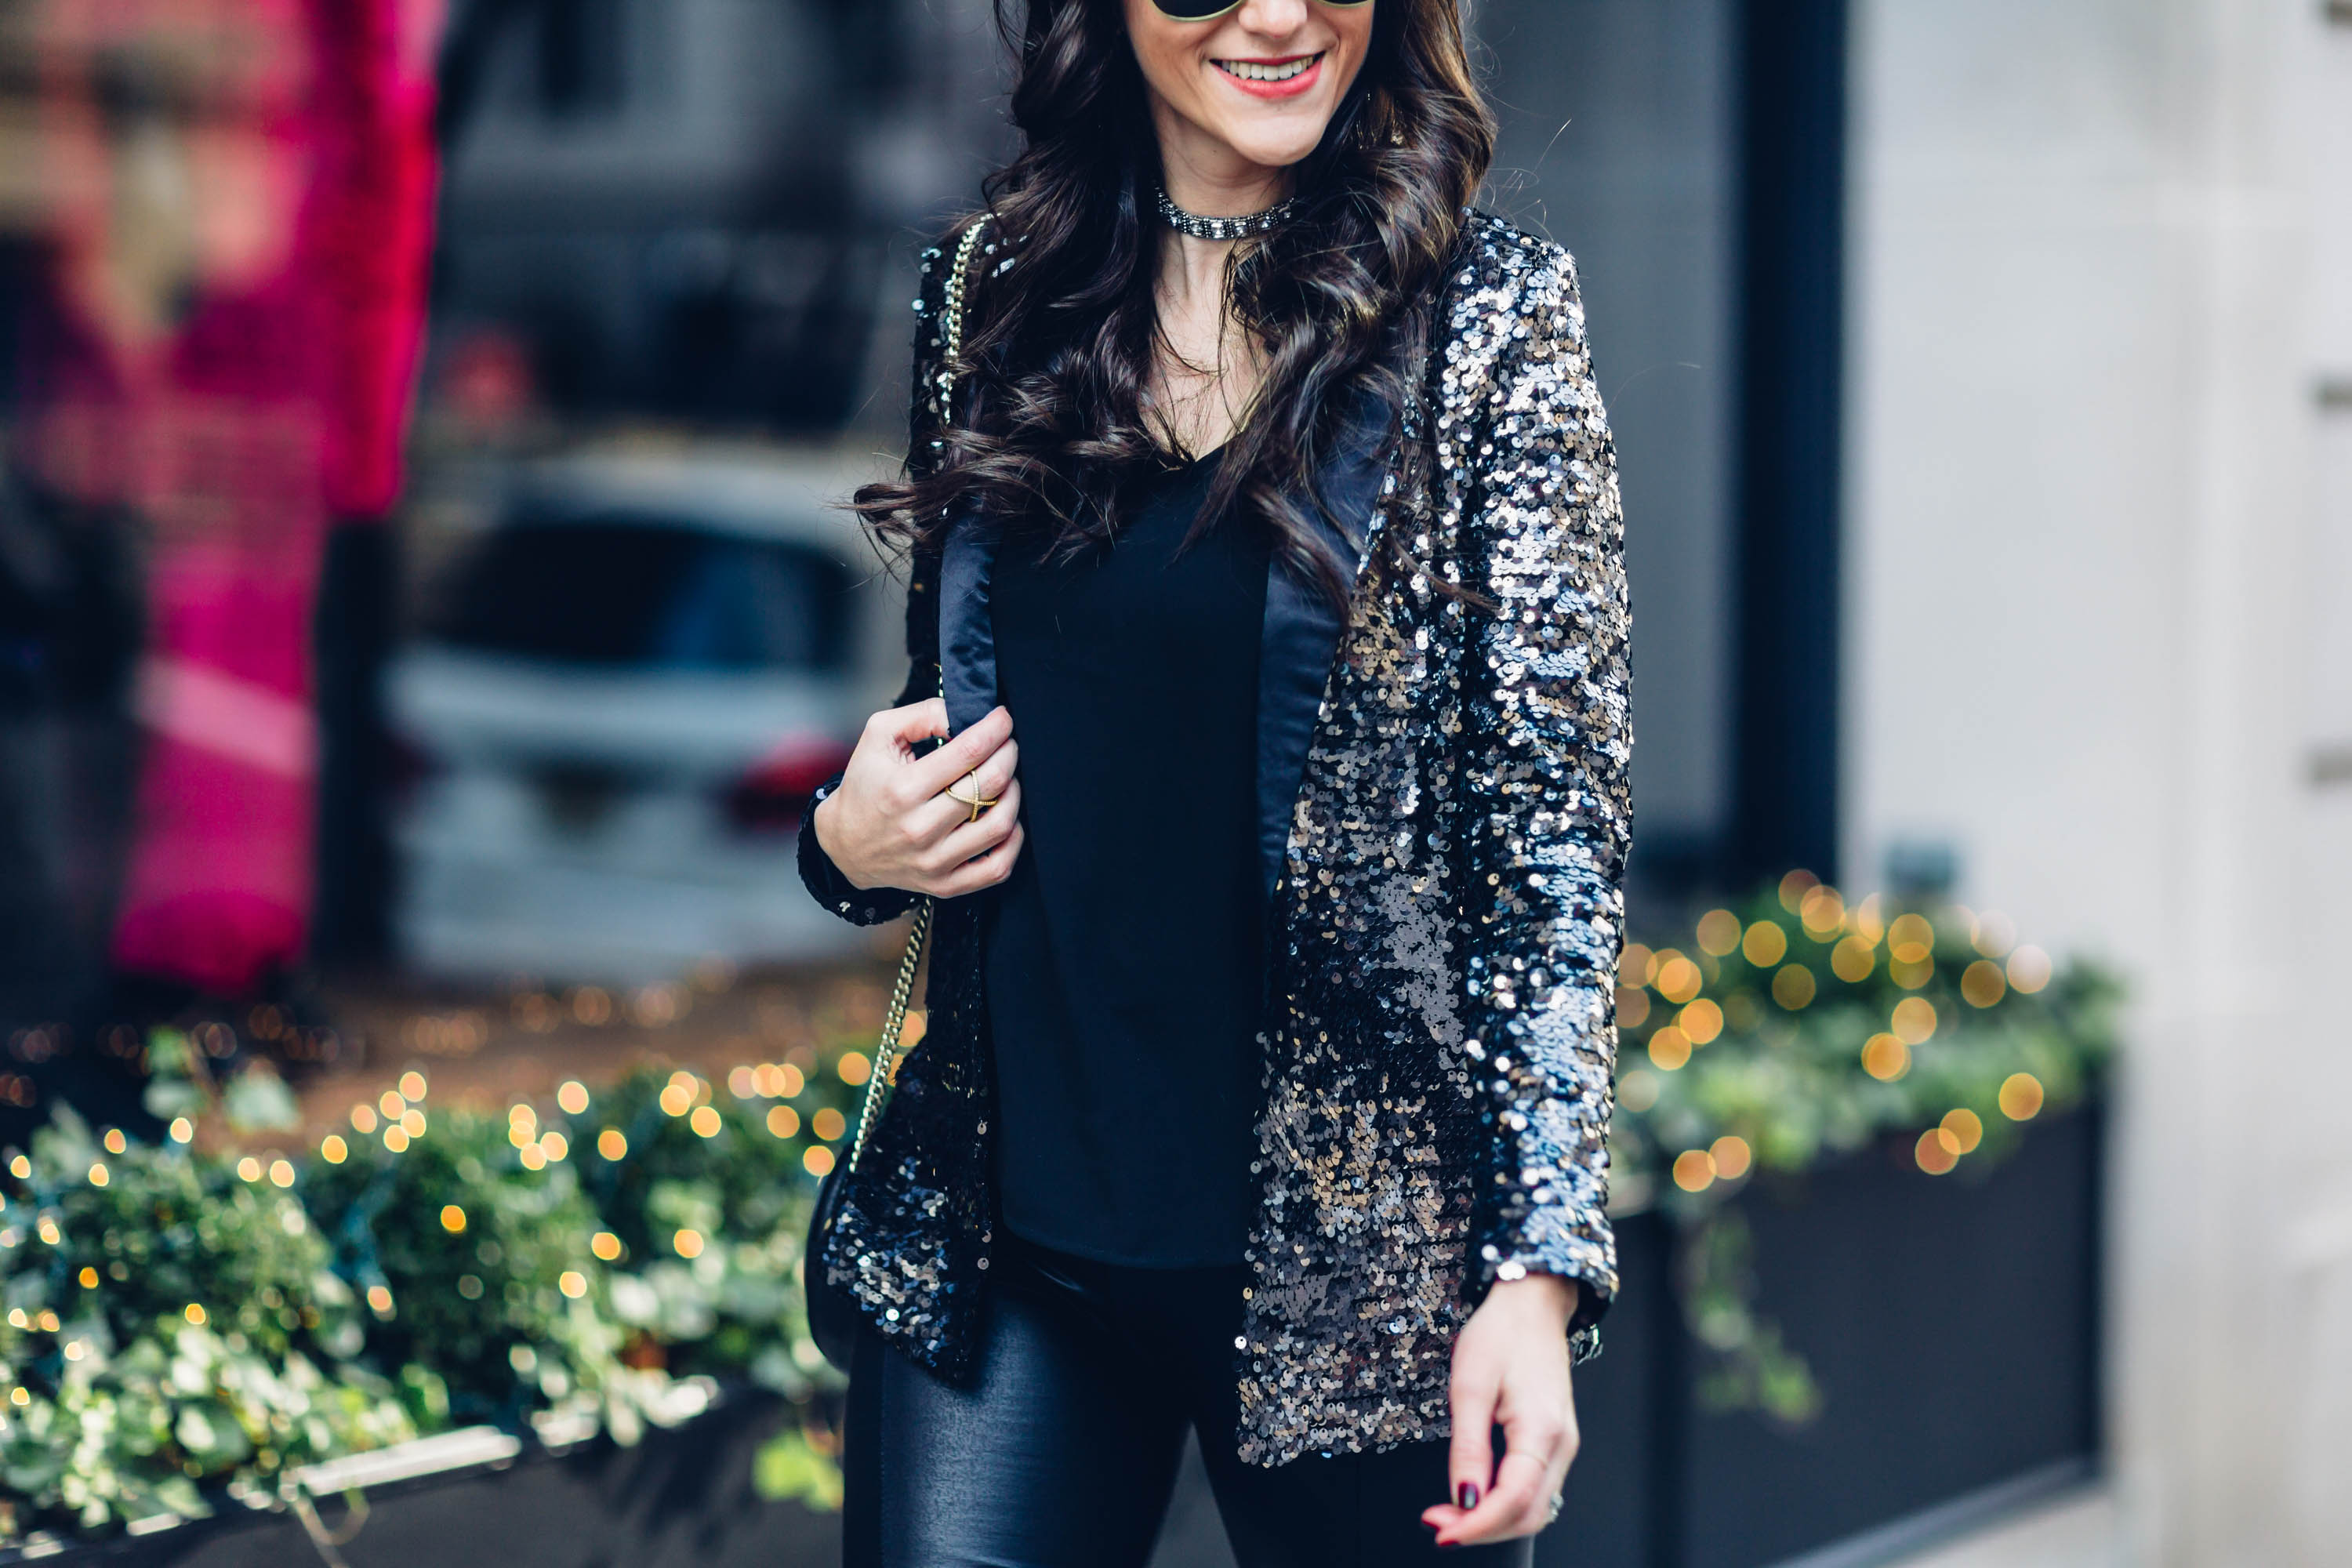 NEW YEARS EVE OUTFIT IDEA WITH A SEQUINS BLAZER